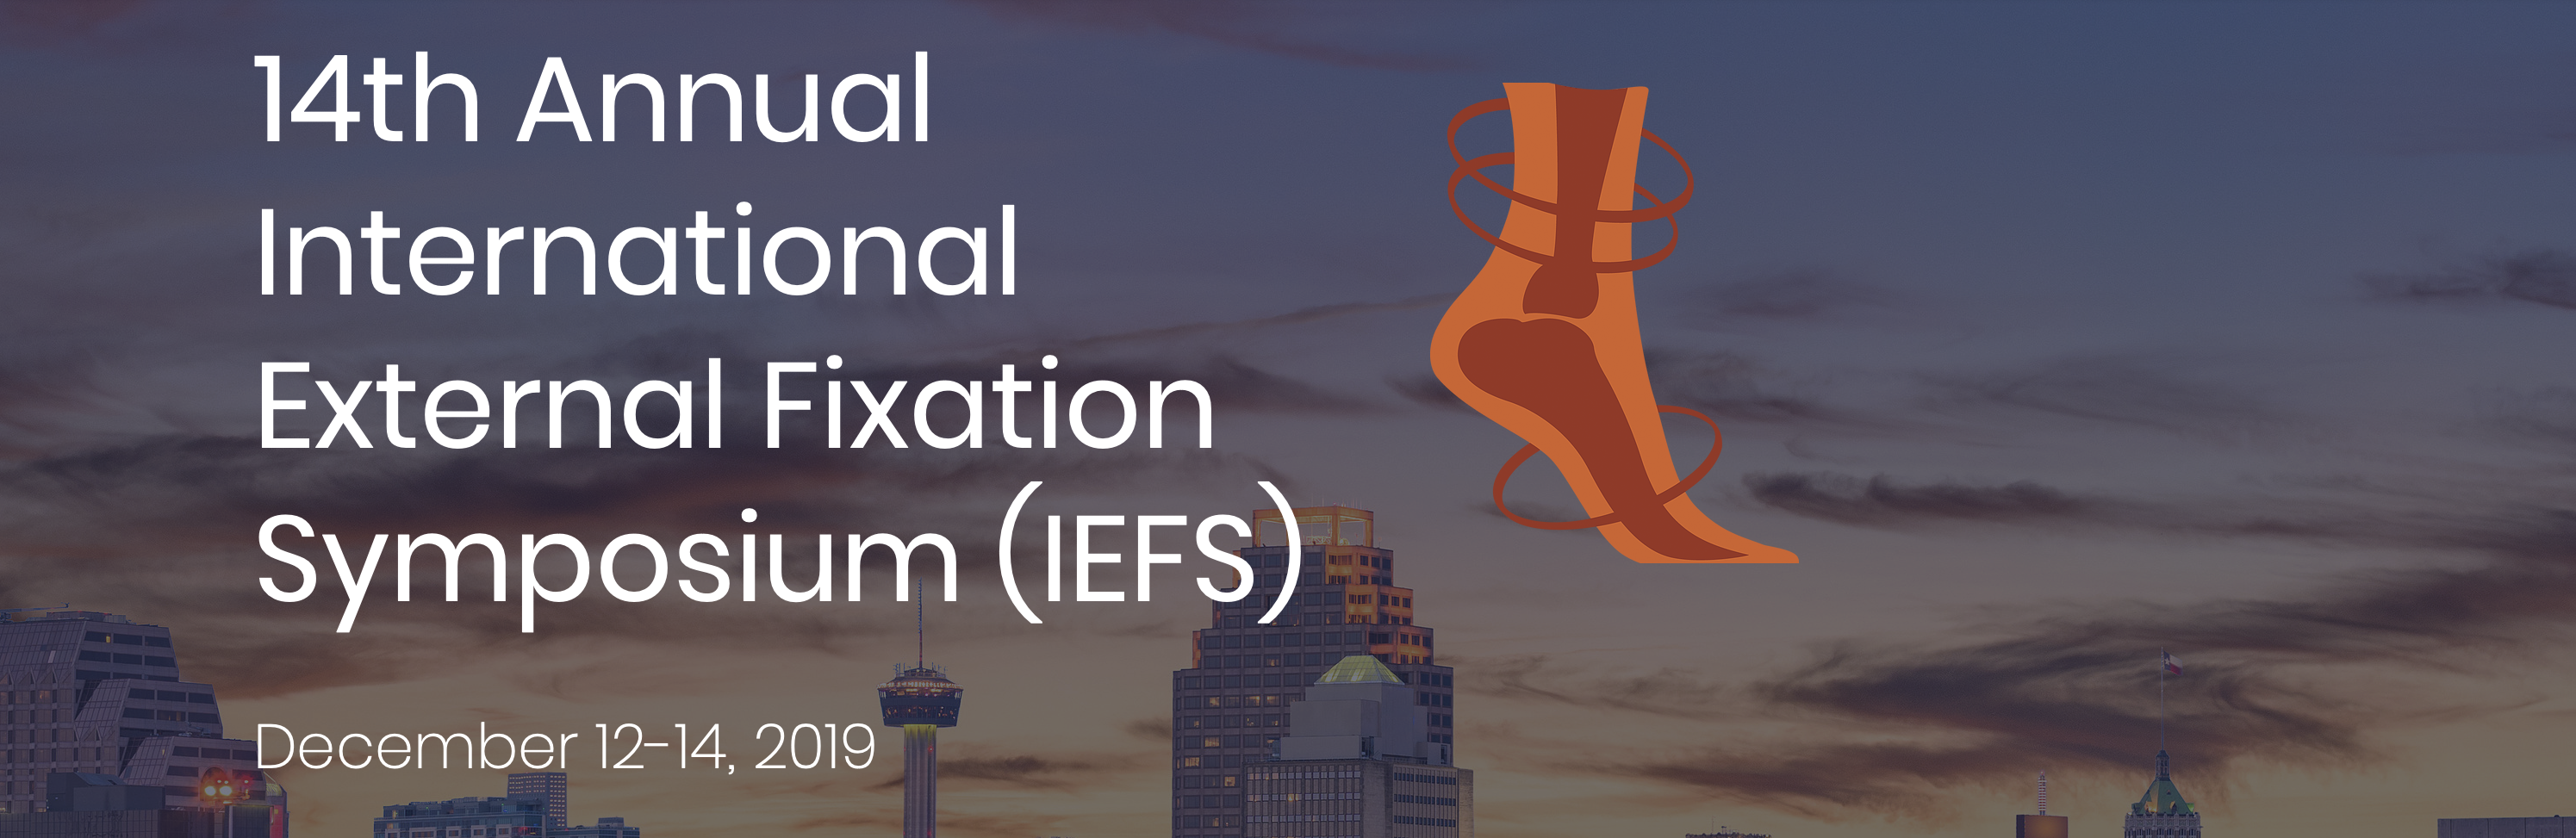 14th Annual International External Fixation Symposium (IEFS)